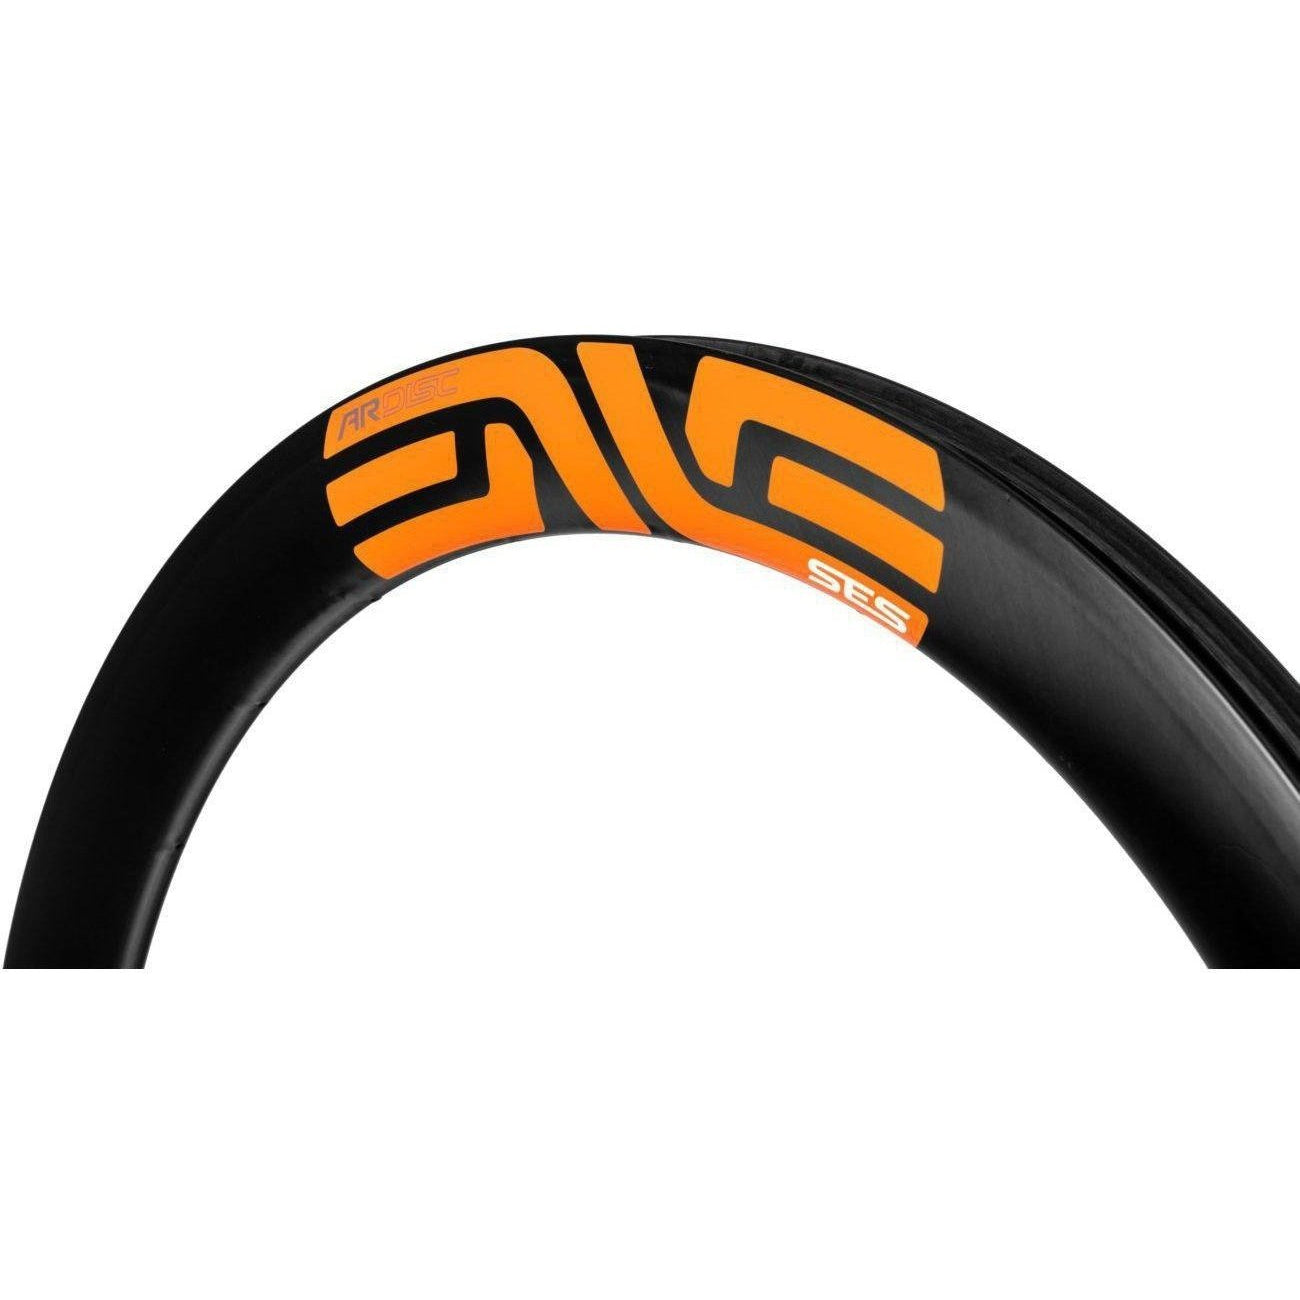 ENVE-ENVE SES 4.5 AR Disc Decals-SES 4.5 AR Disc-Rear 55mm-Orange-EN70001000686-saddleback-elite-performance-cycling